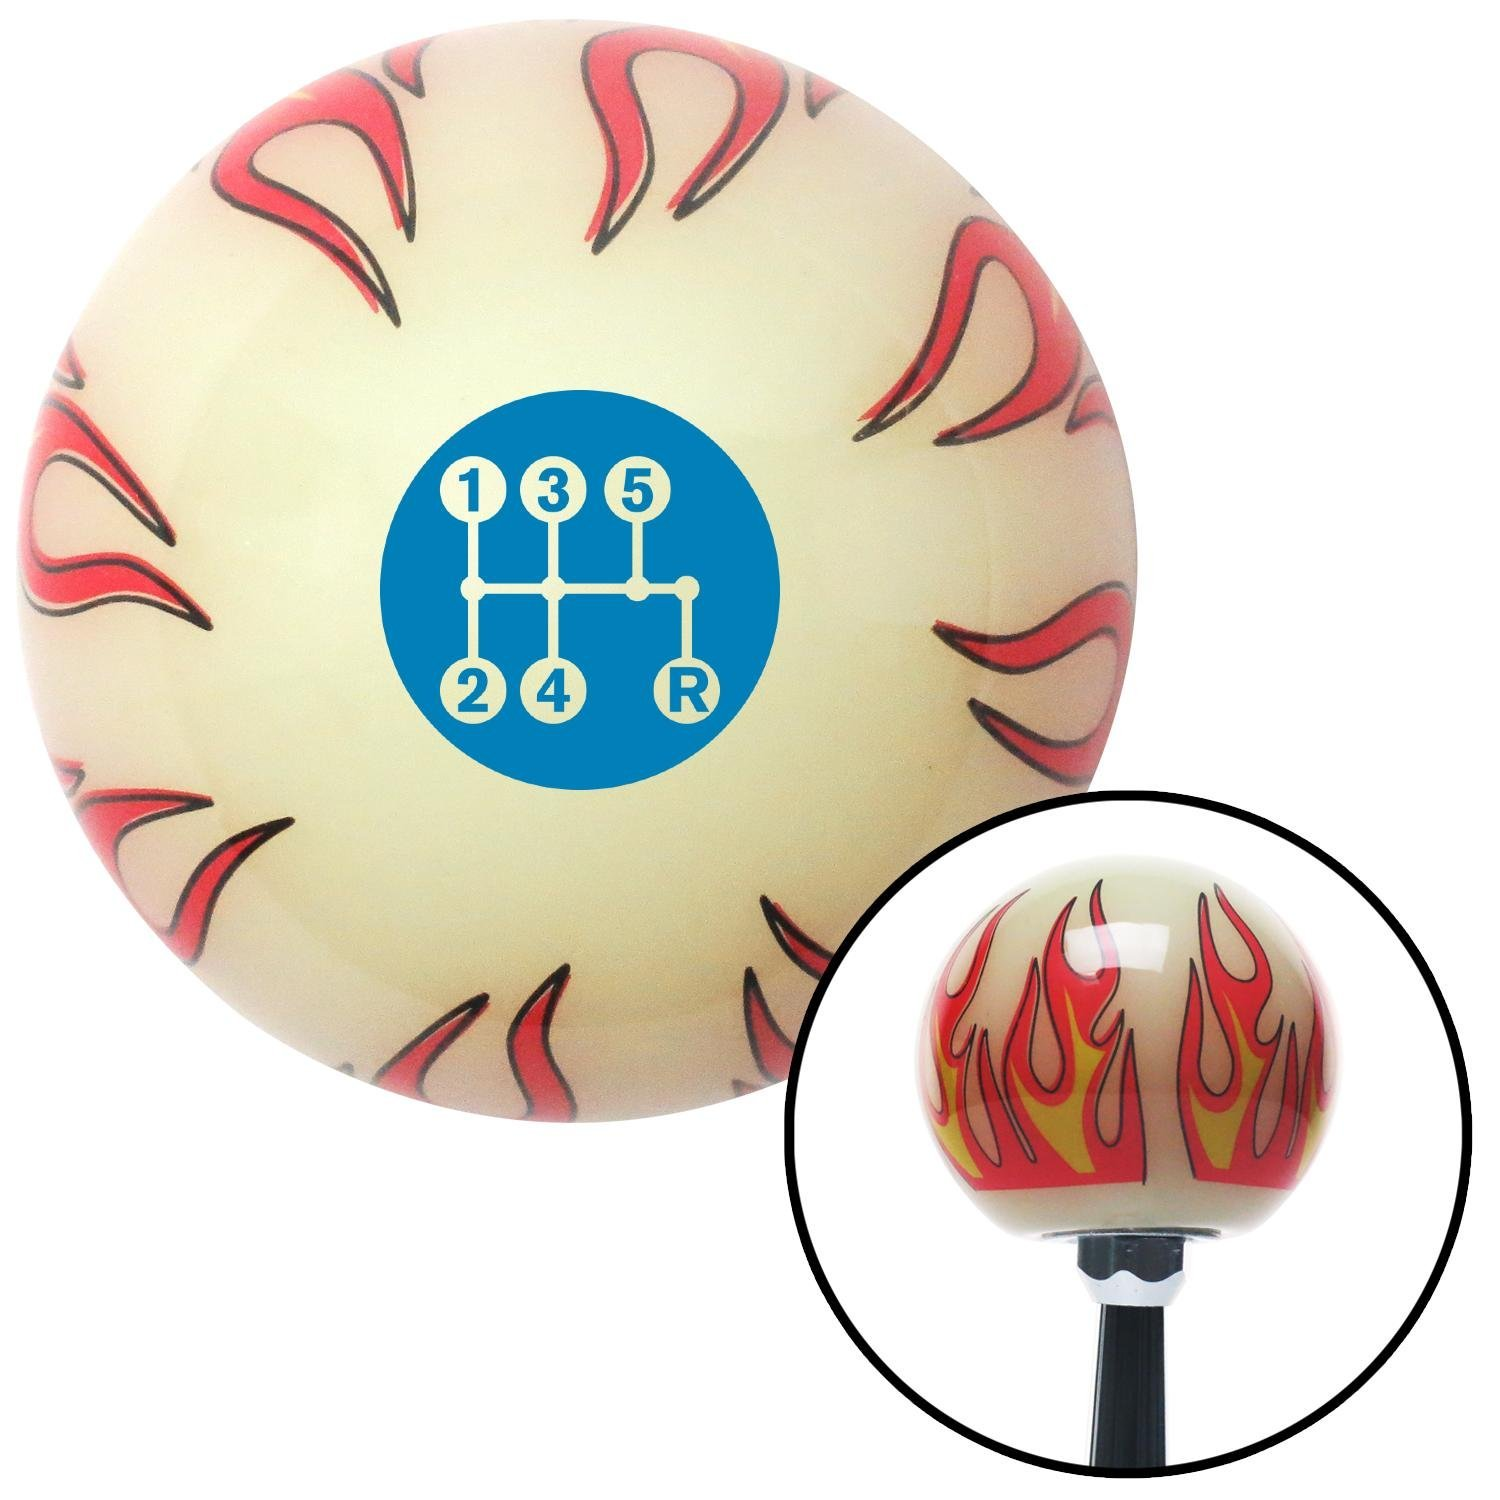 American Shifter 293510 Shift Knob Blue 5 Speed Shift Pattern - Dots 15 Ivory Flame with M16 x 1.5 Insert